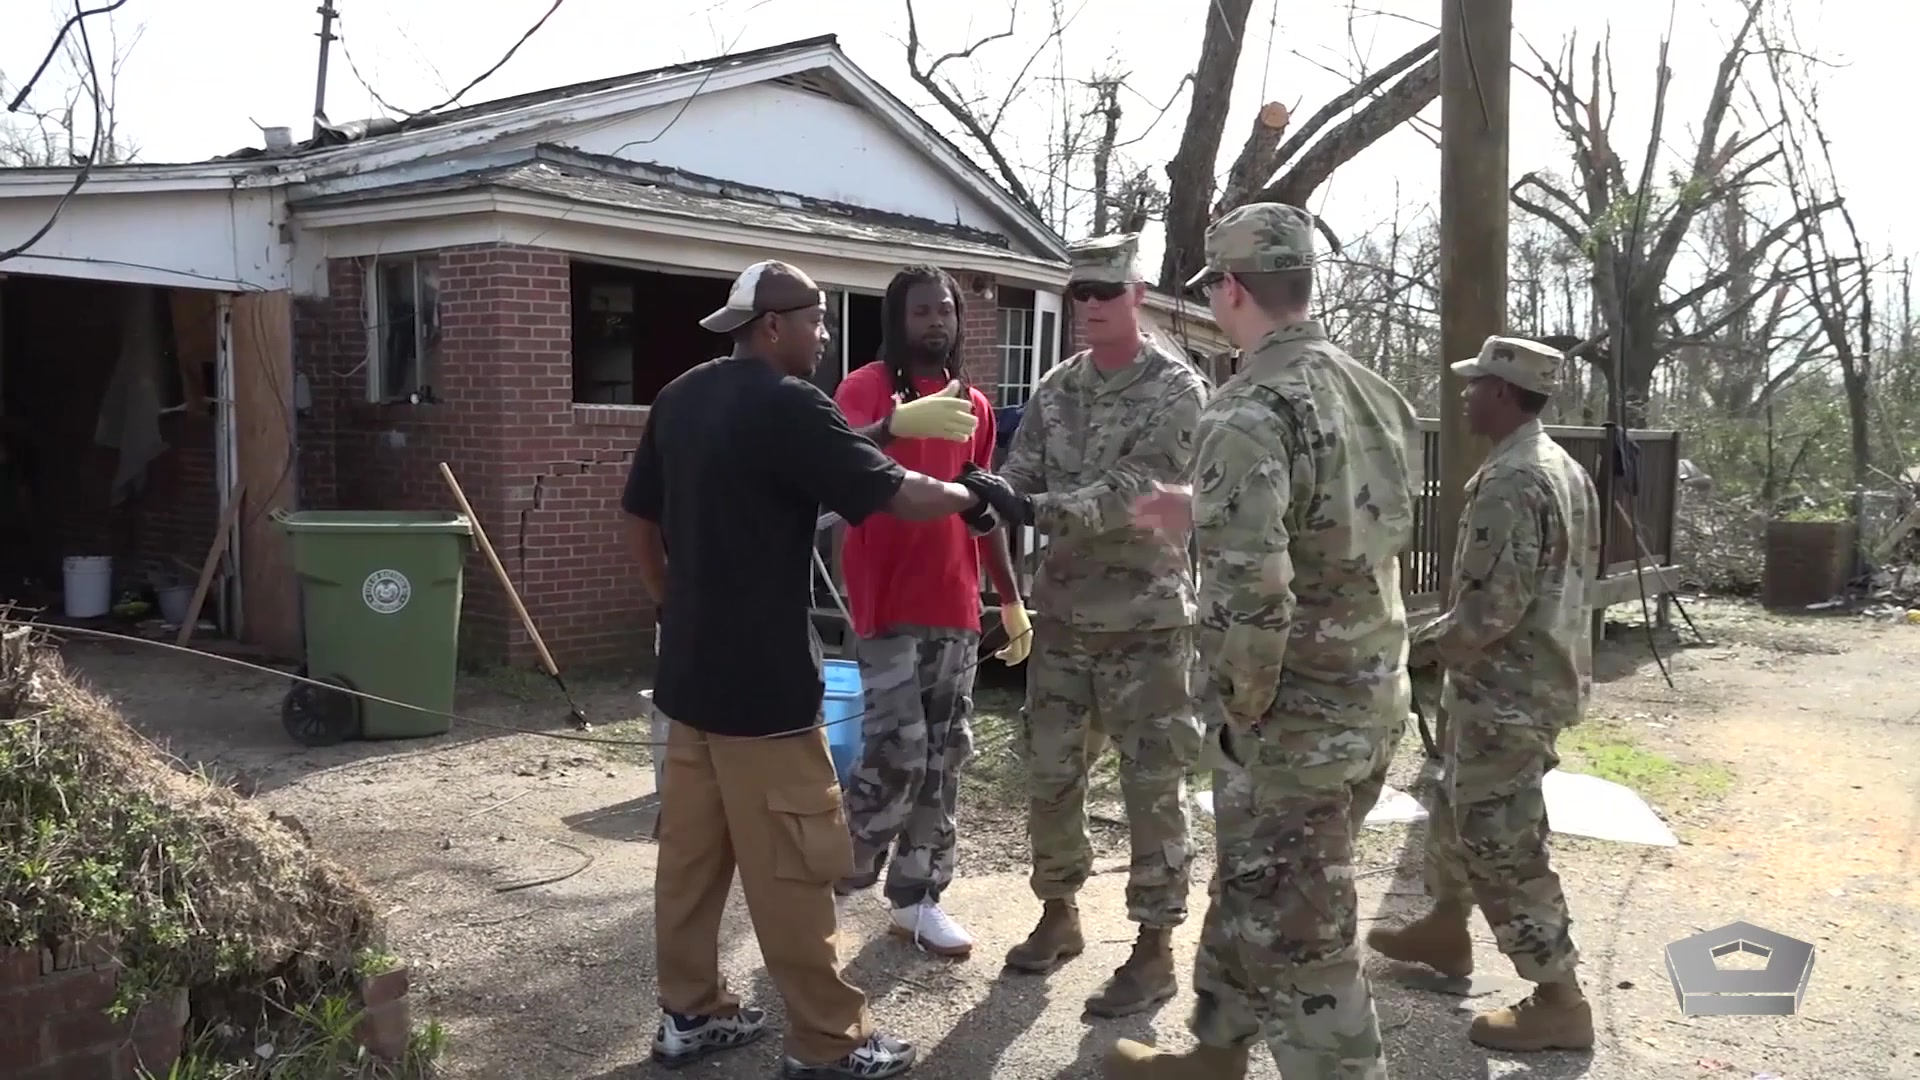 National Guard troops talk to victims of a natural disaster.